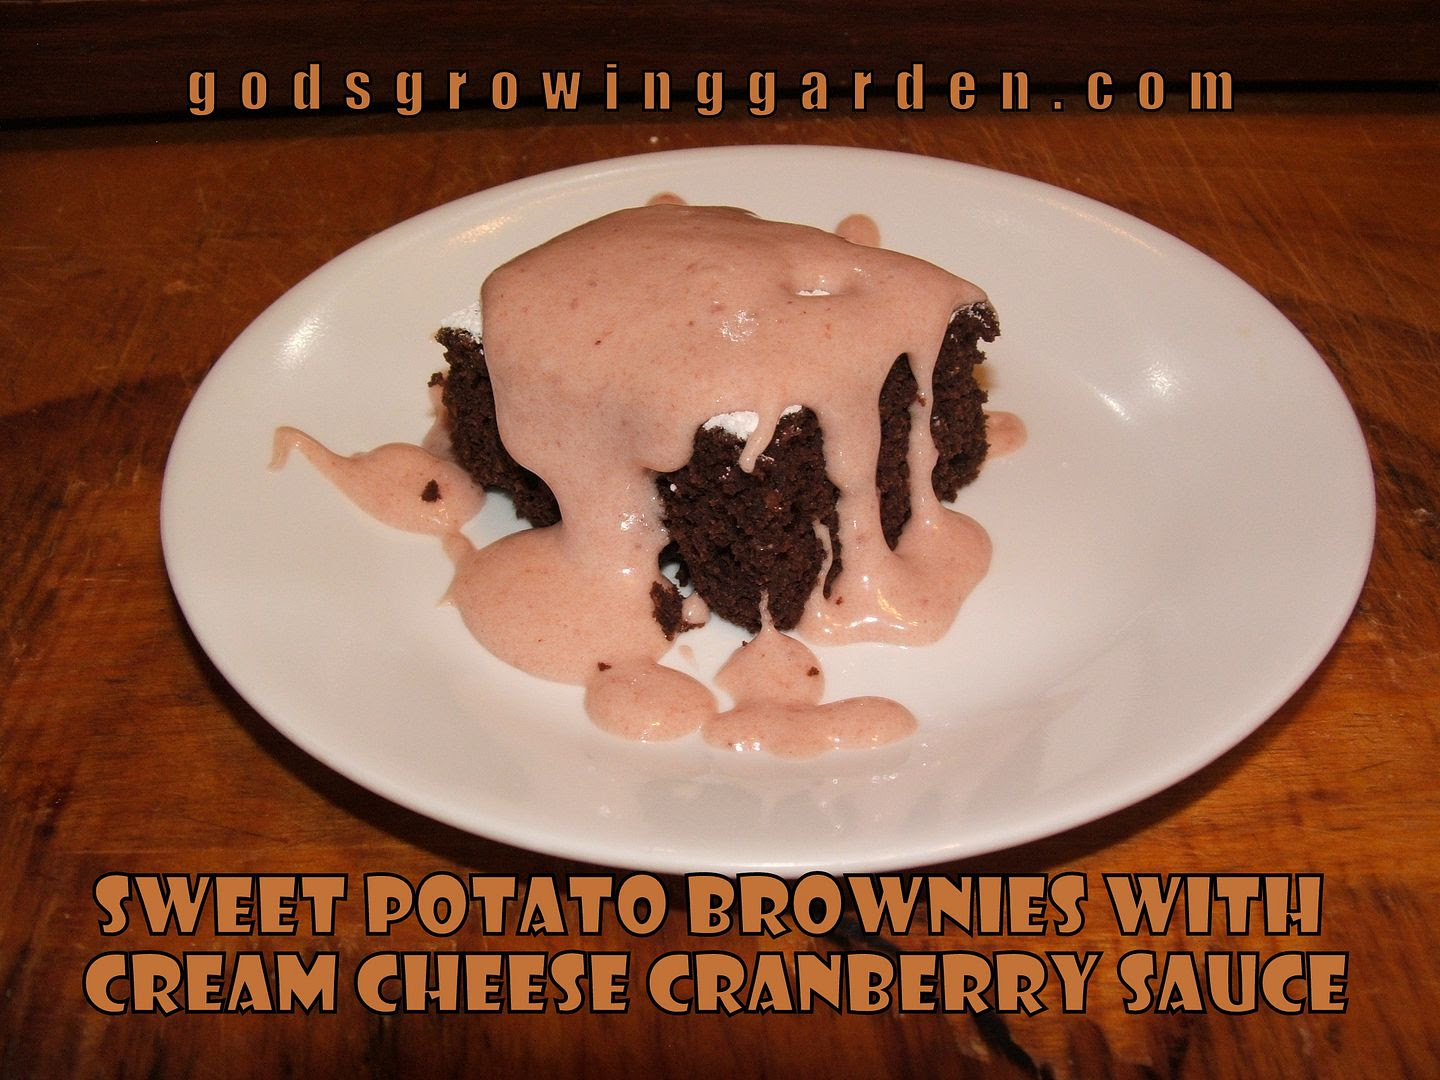 Sweet Potato Brownies by Angie Ouellette-Tower for godsgrowinggarden.com photo 010_zps83c2f98b.jpg